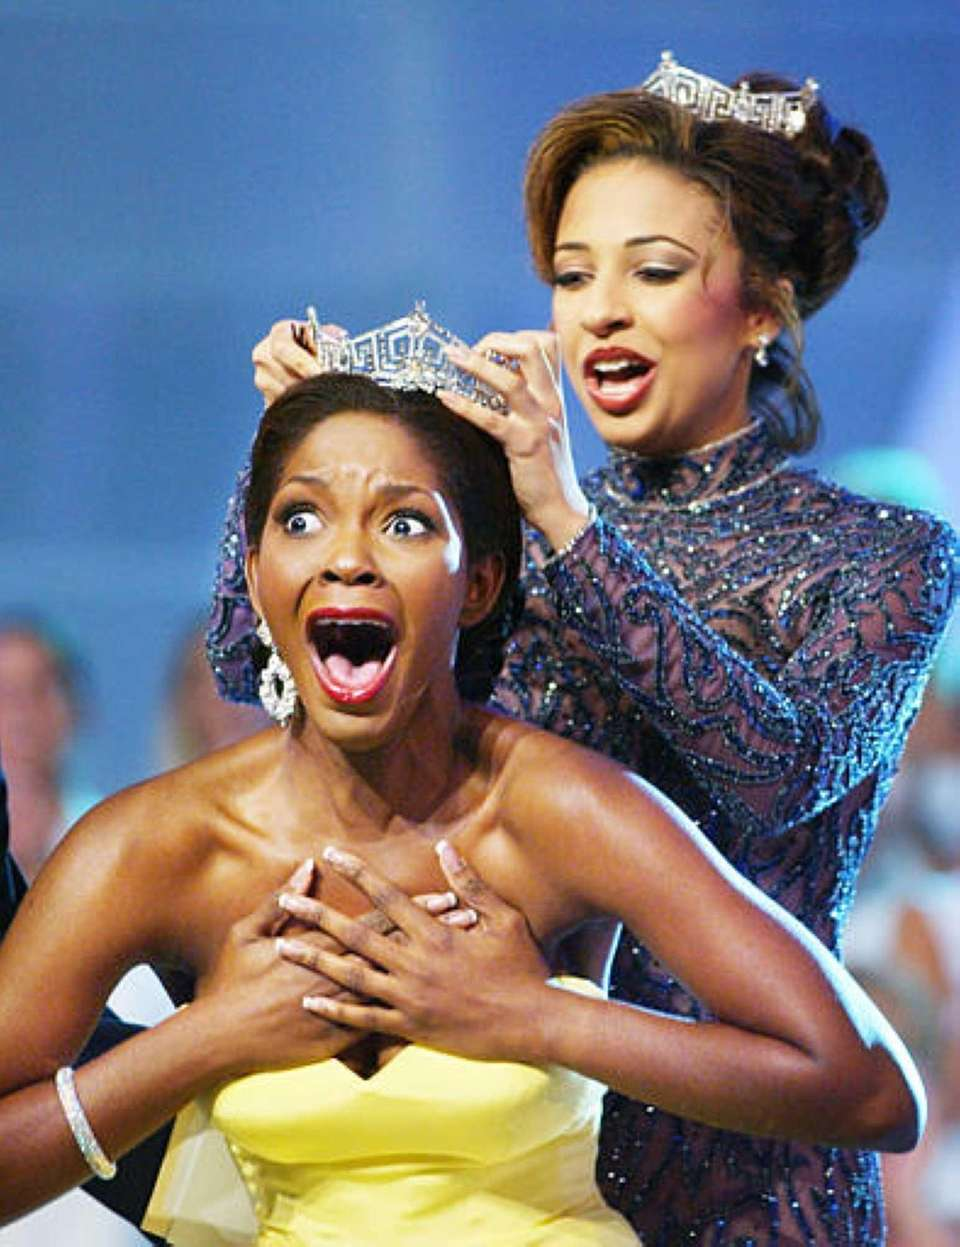 Miss Florida Ericka Dunlap, left, reacts after being